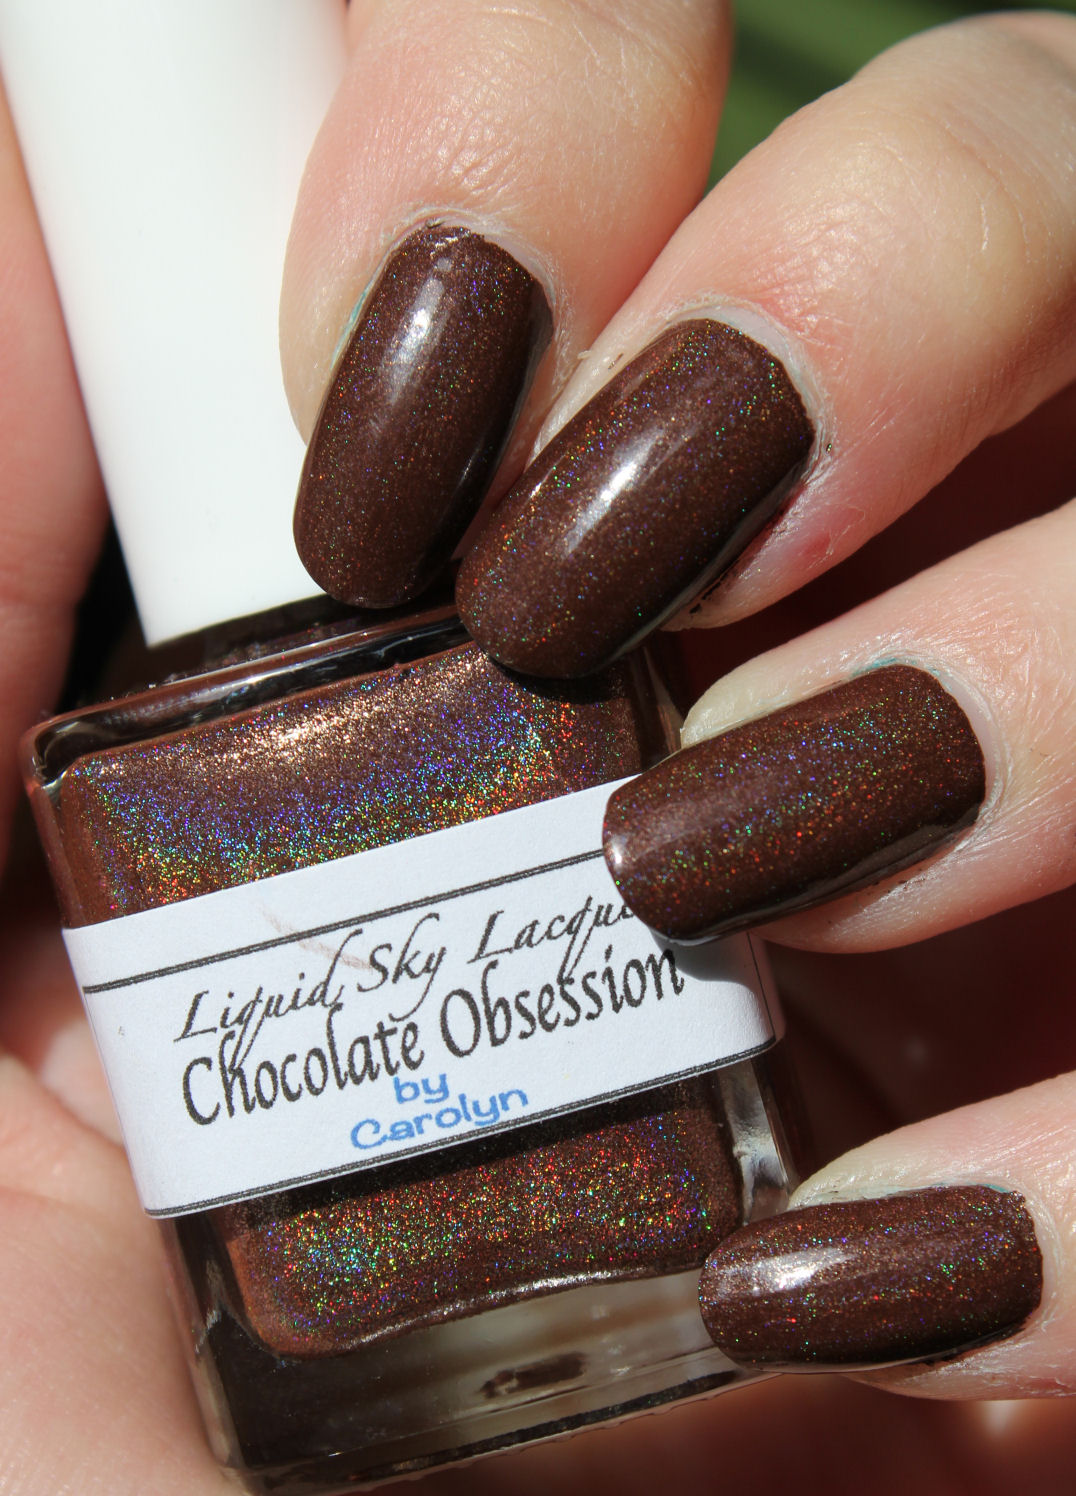 http://lacquediction.blogspot.de/2014/12/liquid-sky-lacquer-chocolate-obsession.html